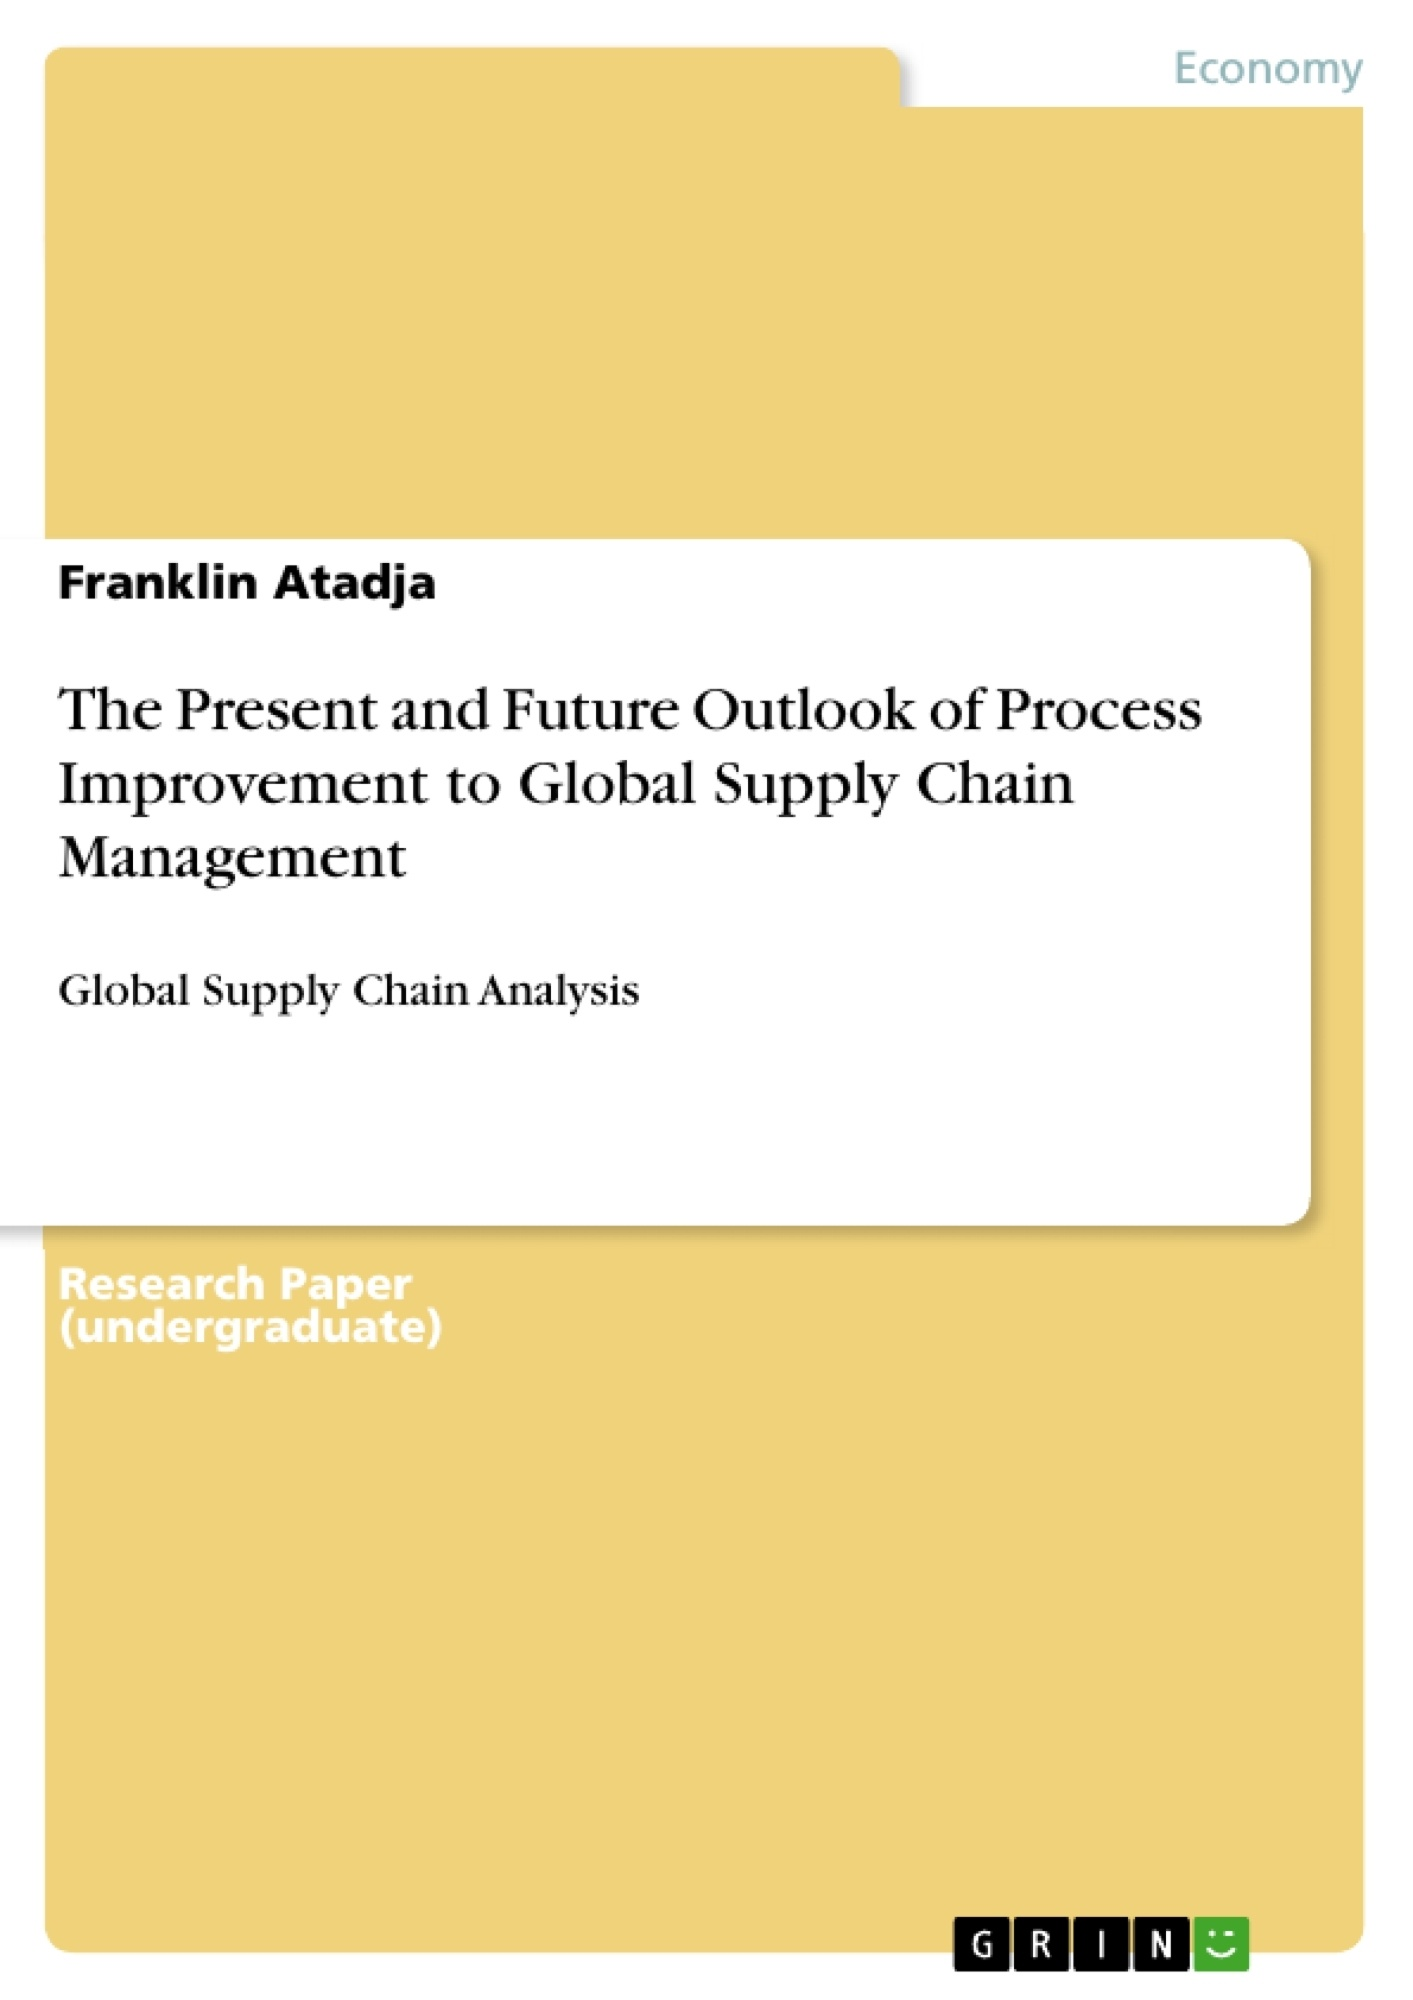 Title: The Present and Future Outlook of Process Improvement to Global Supply Chain Management